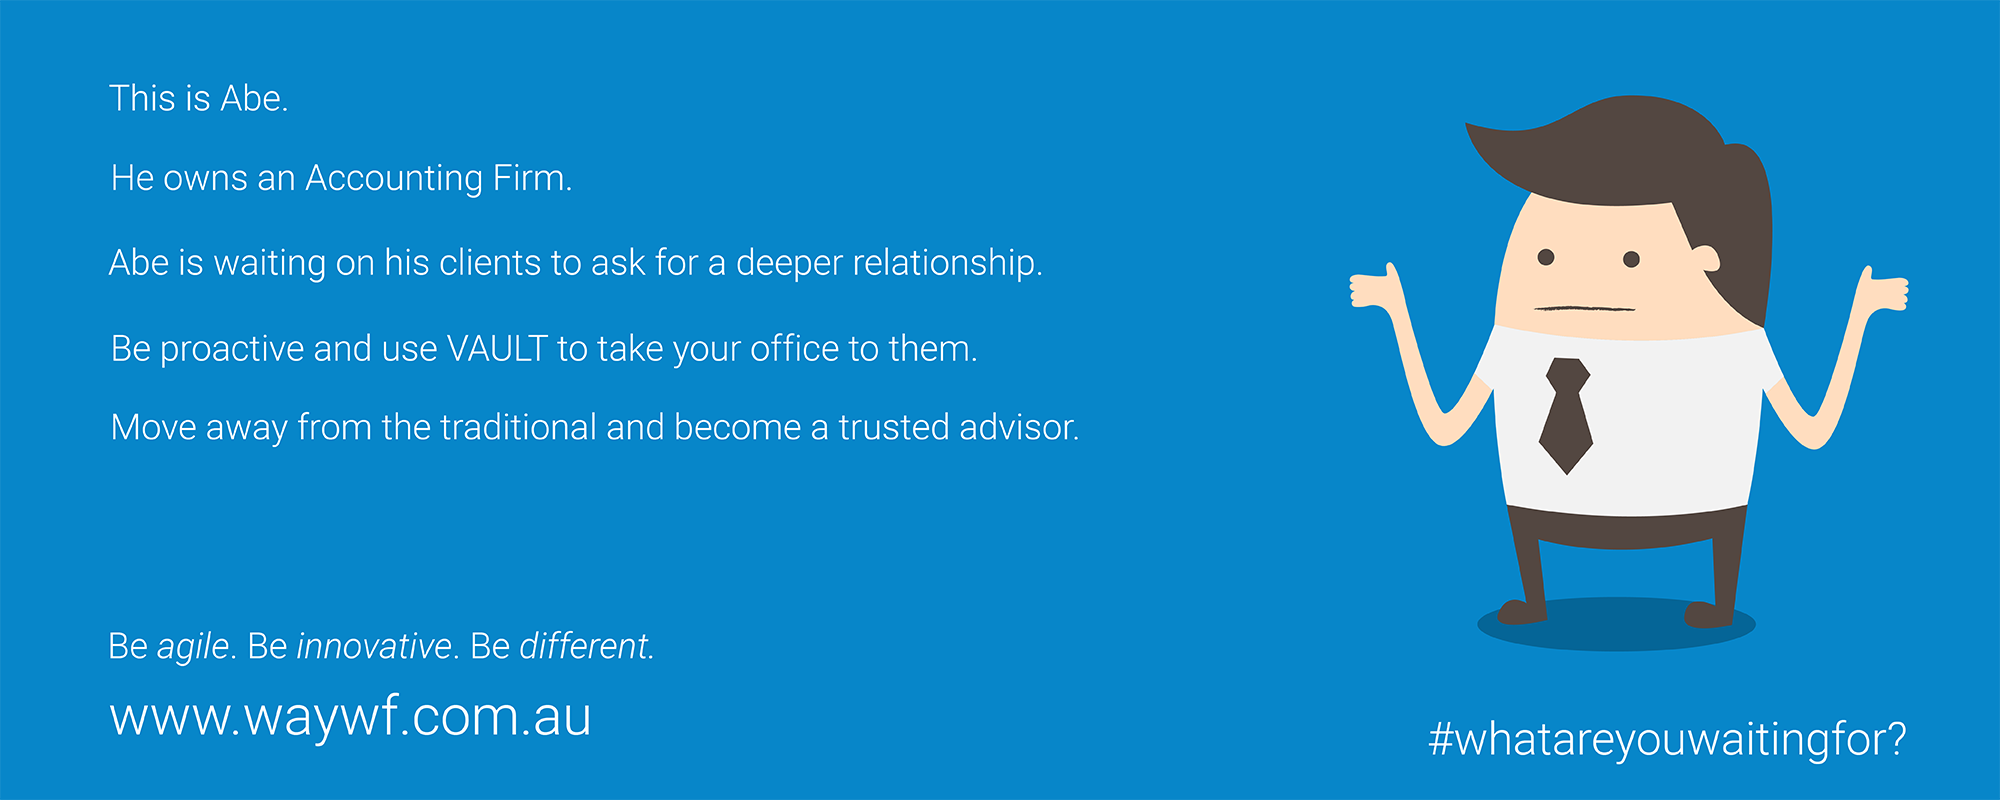 Your clients won't ask for a deeper relationship - so what are you waiting for?